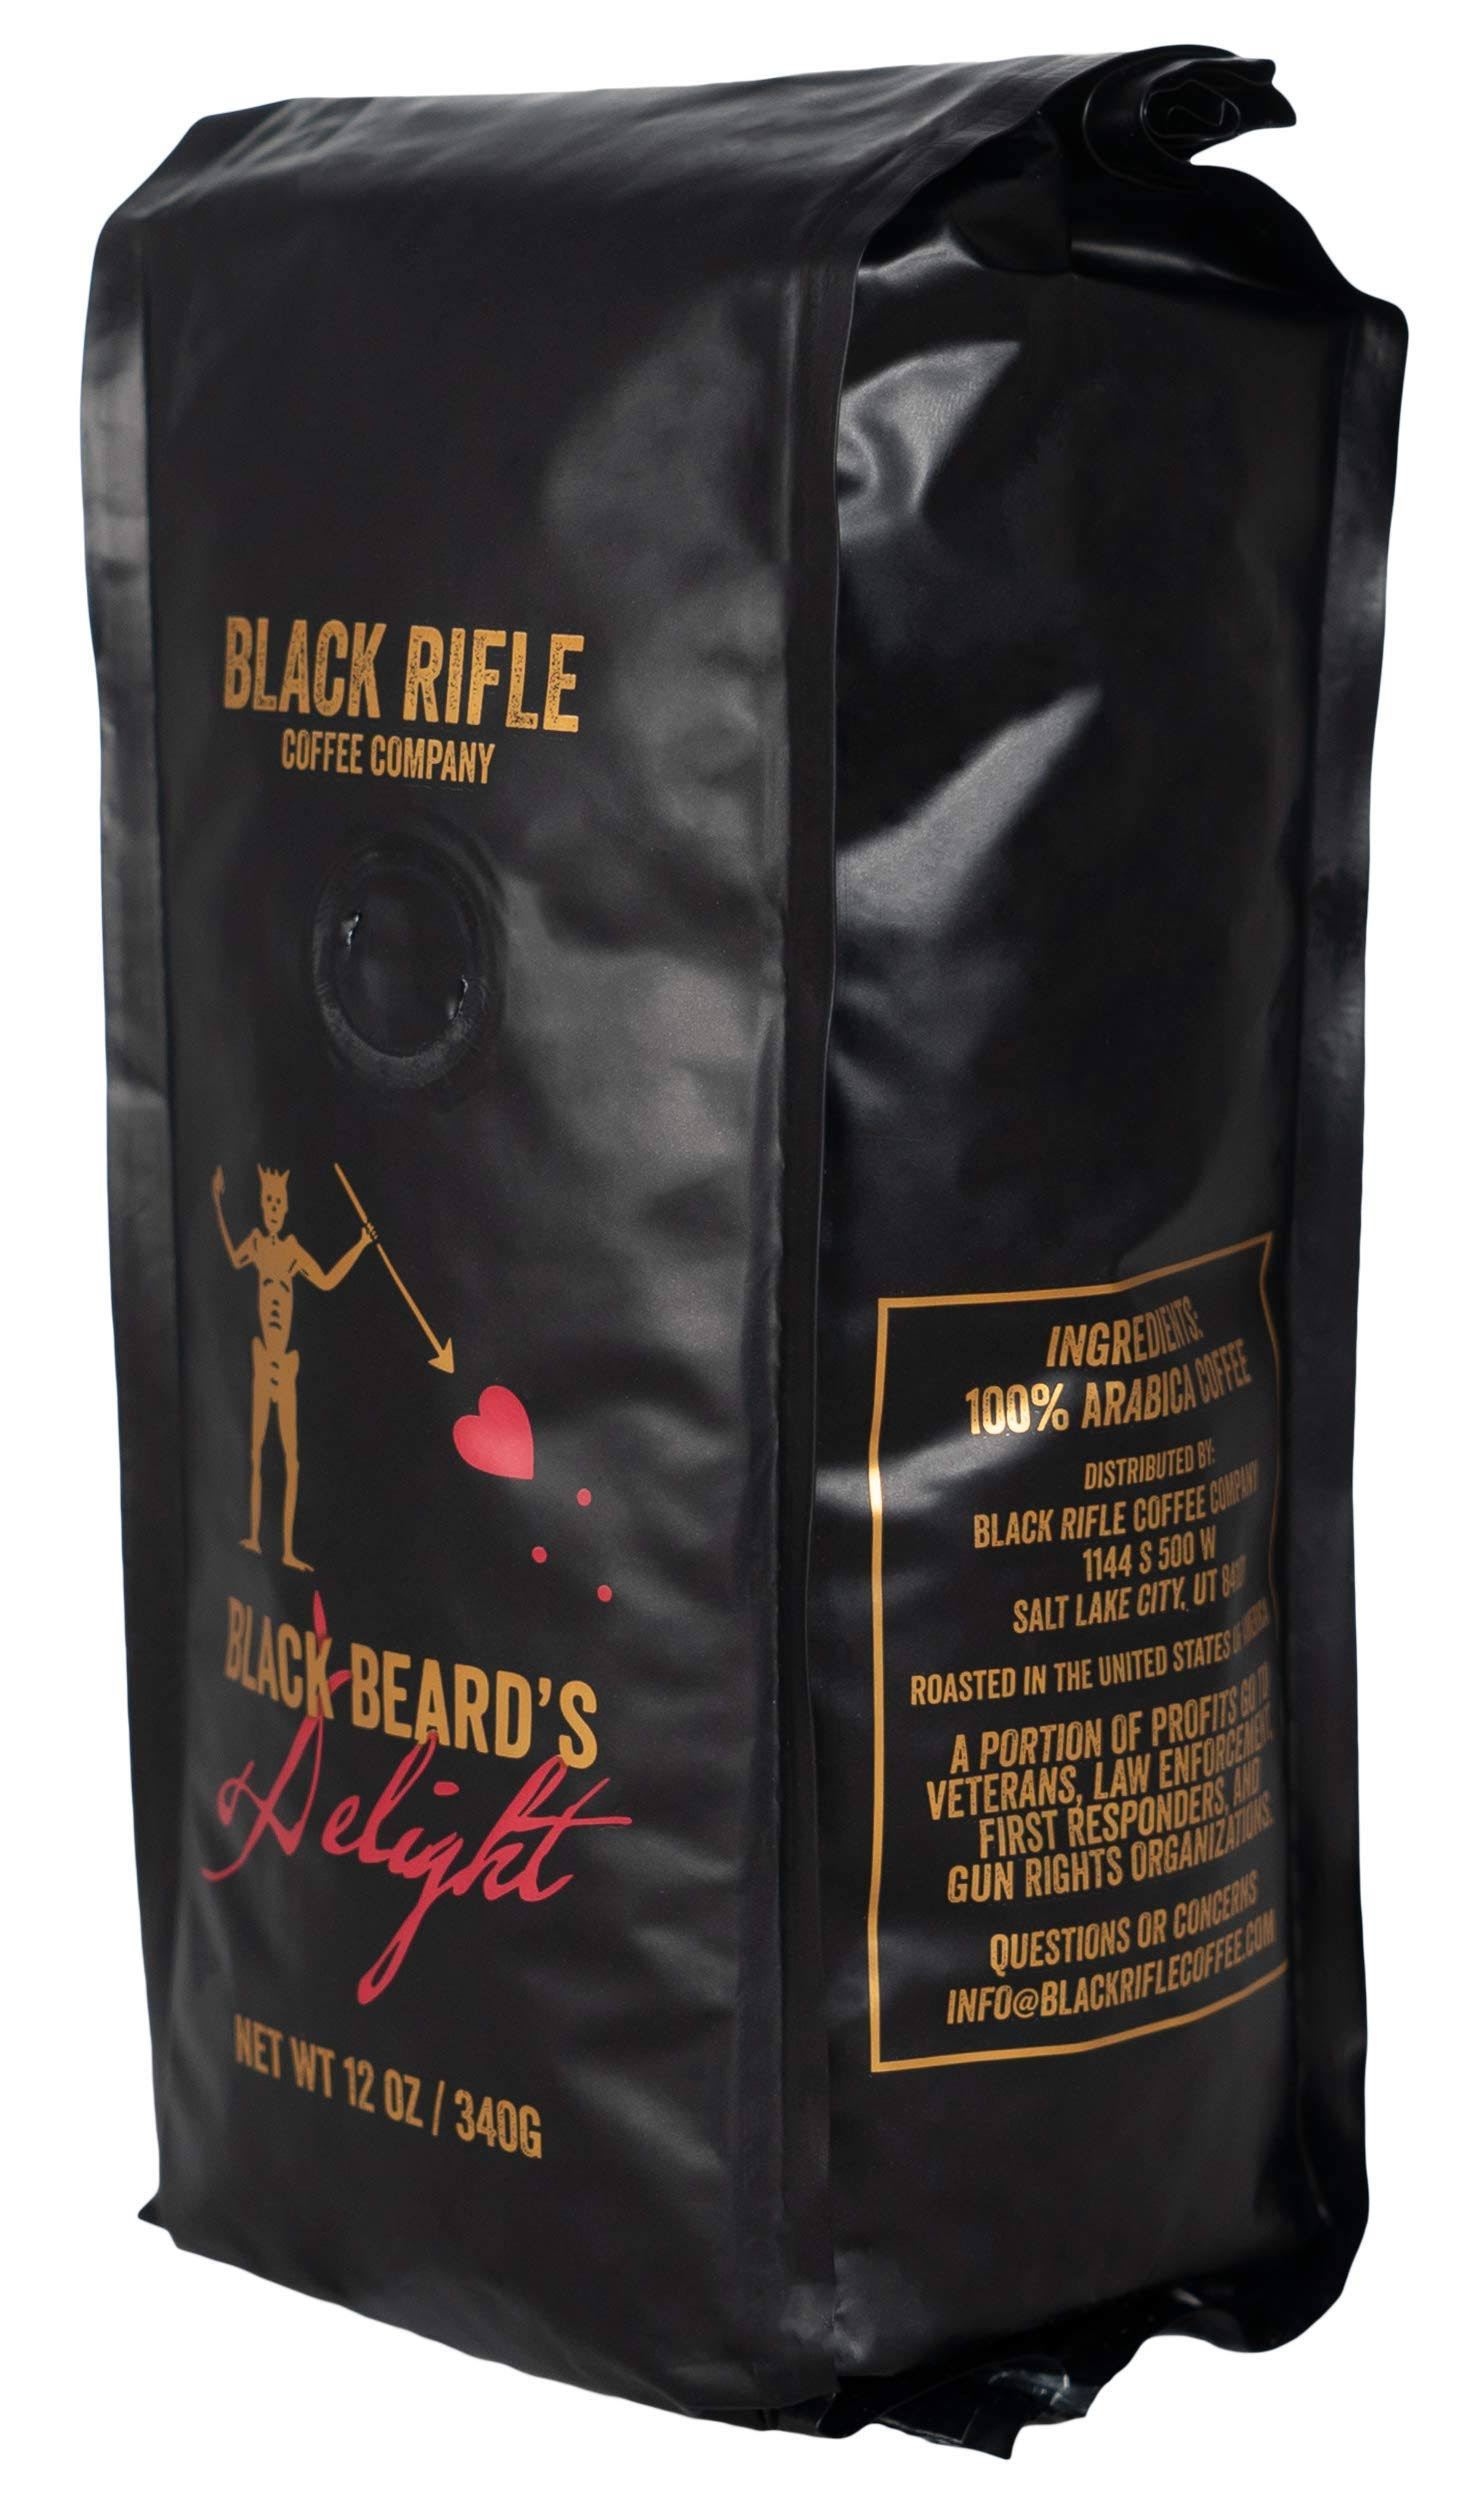 Black Rifle Coffee Company Blackbeard's Delight Coffee - 12oz